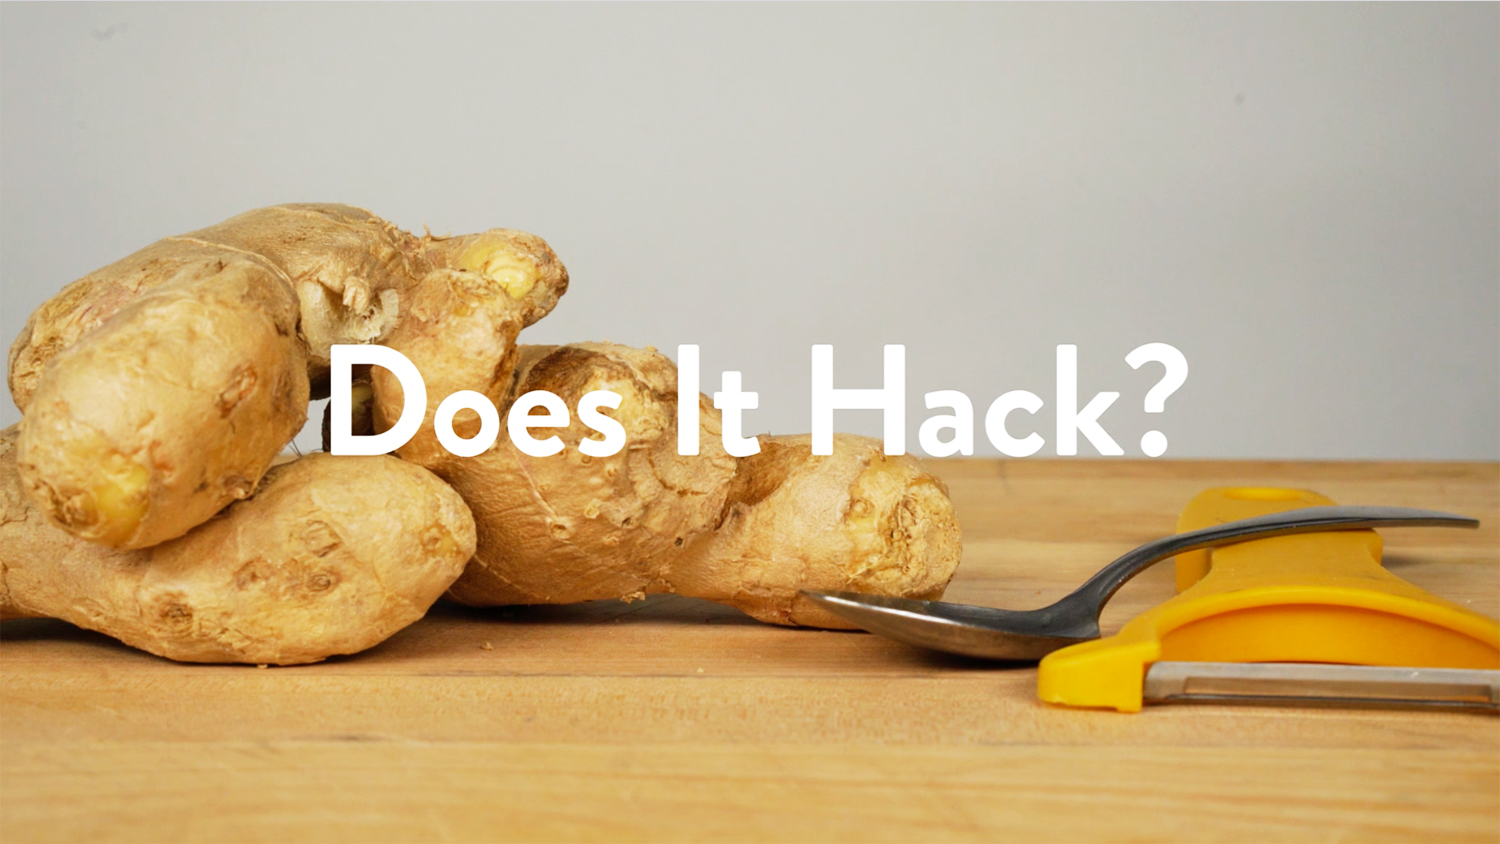 Does It Hack? Peeling Ginger With a Spoon